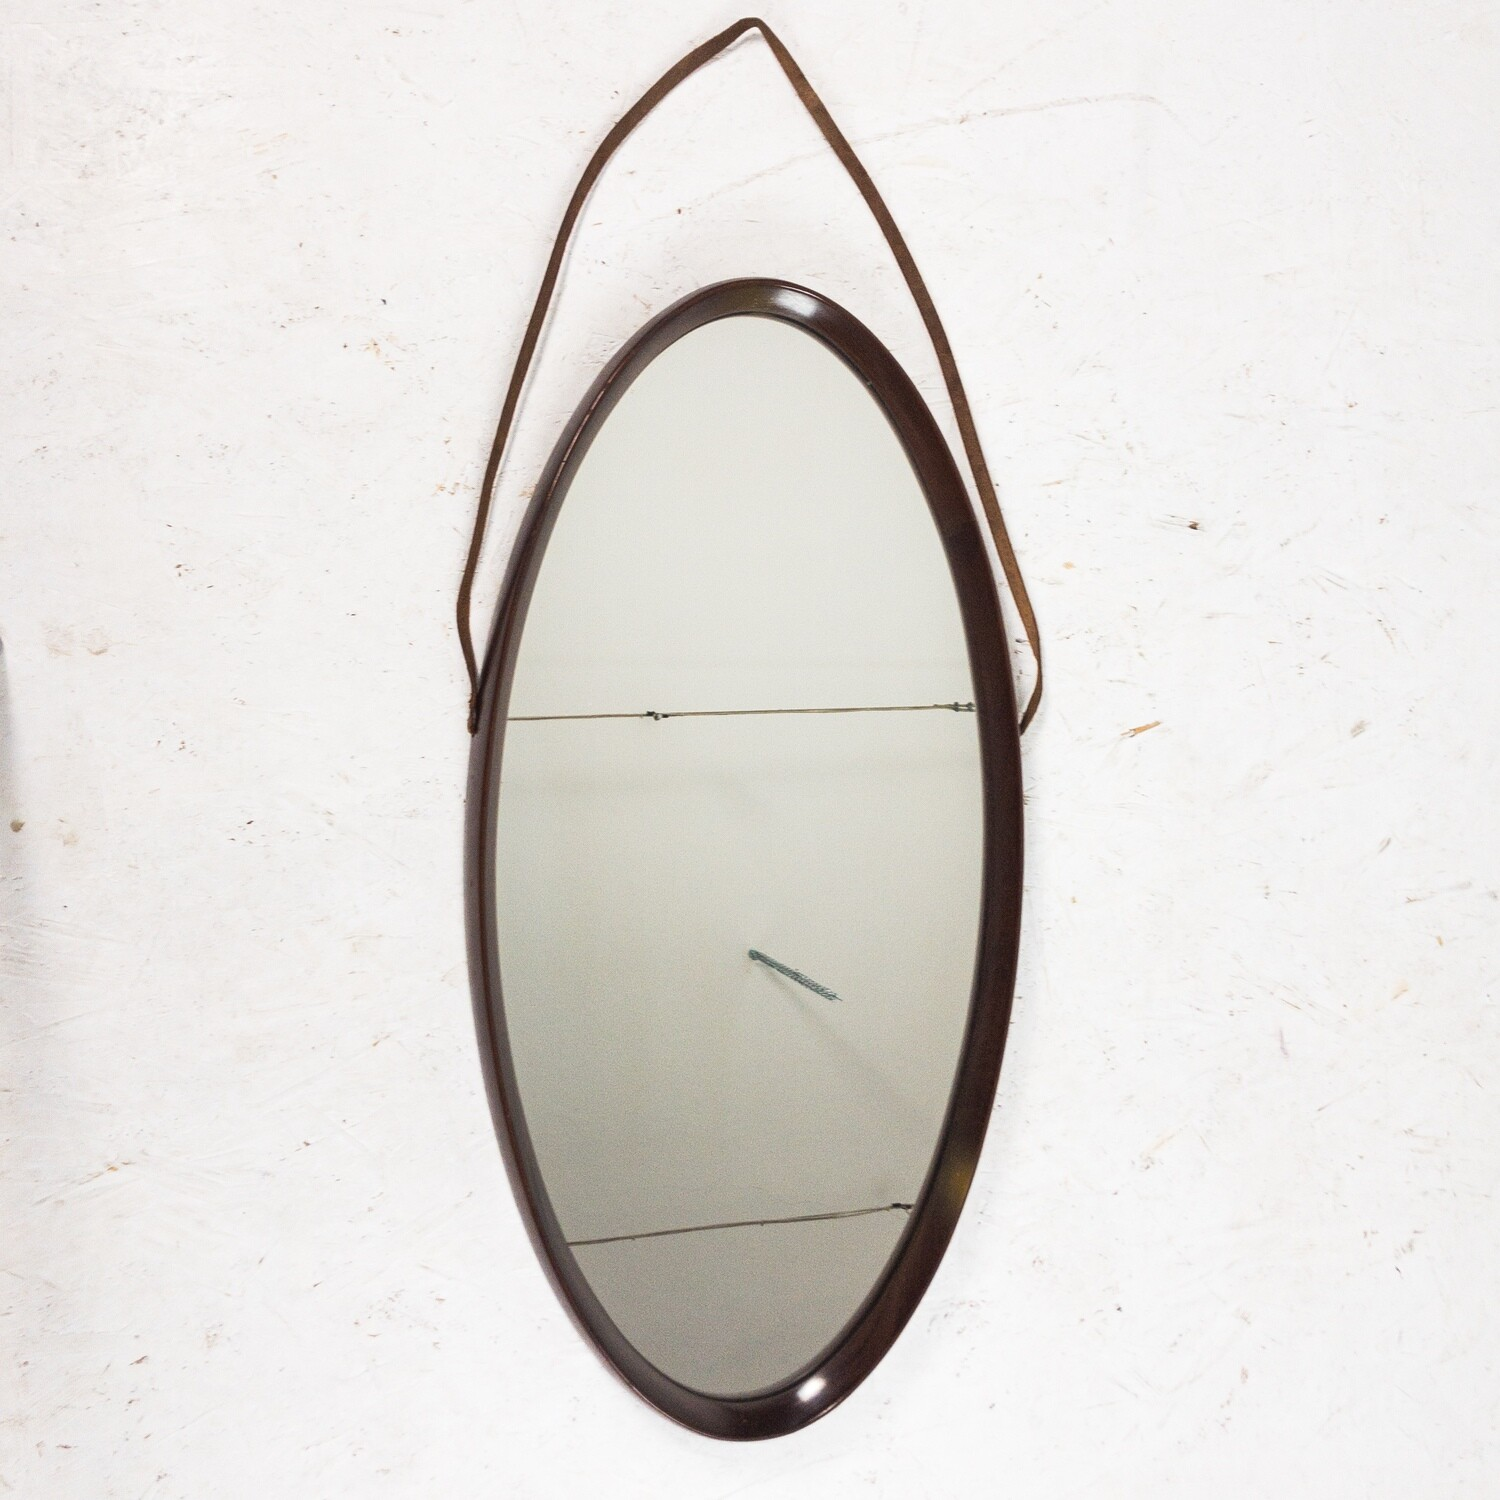 Oval mirror from the 1970s